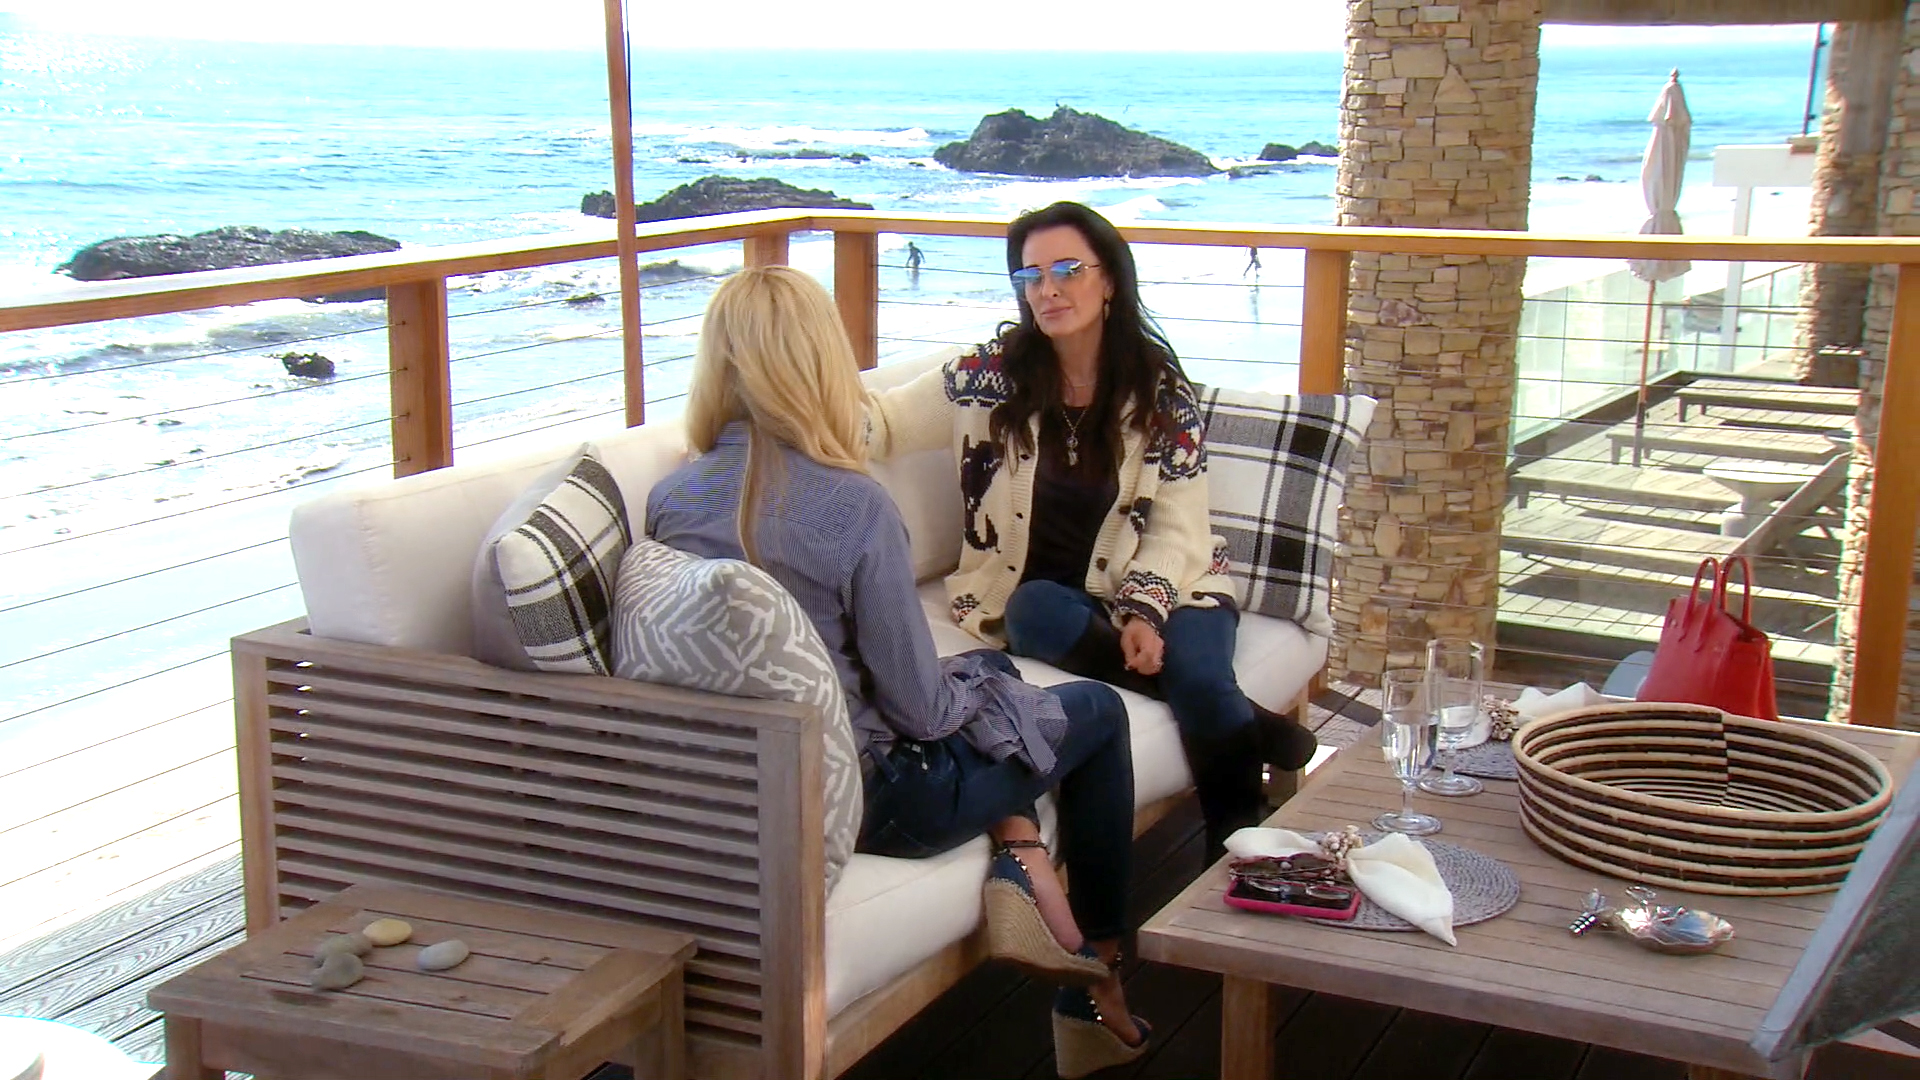 Kyle Richards Confronts Camille Grammer Over Her Negative Social Media Comments